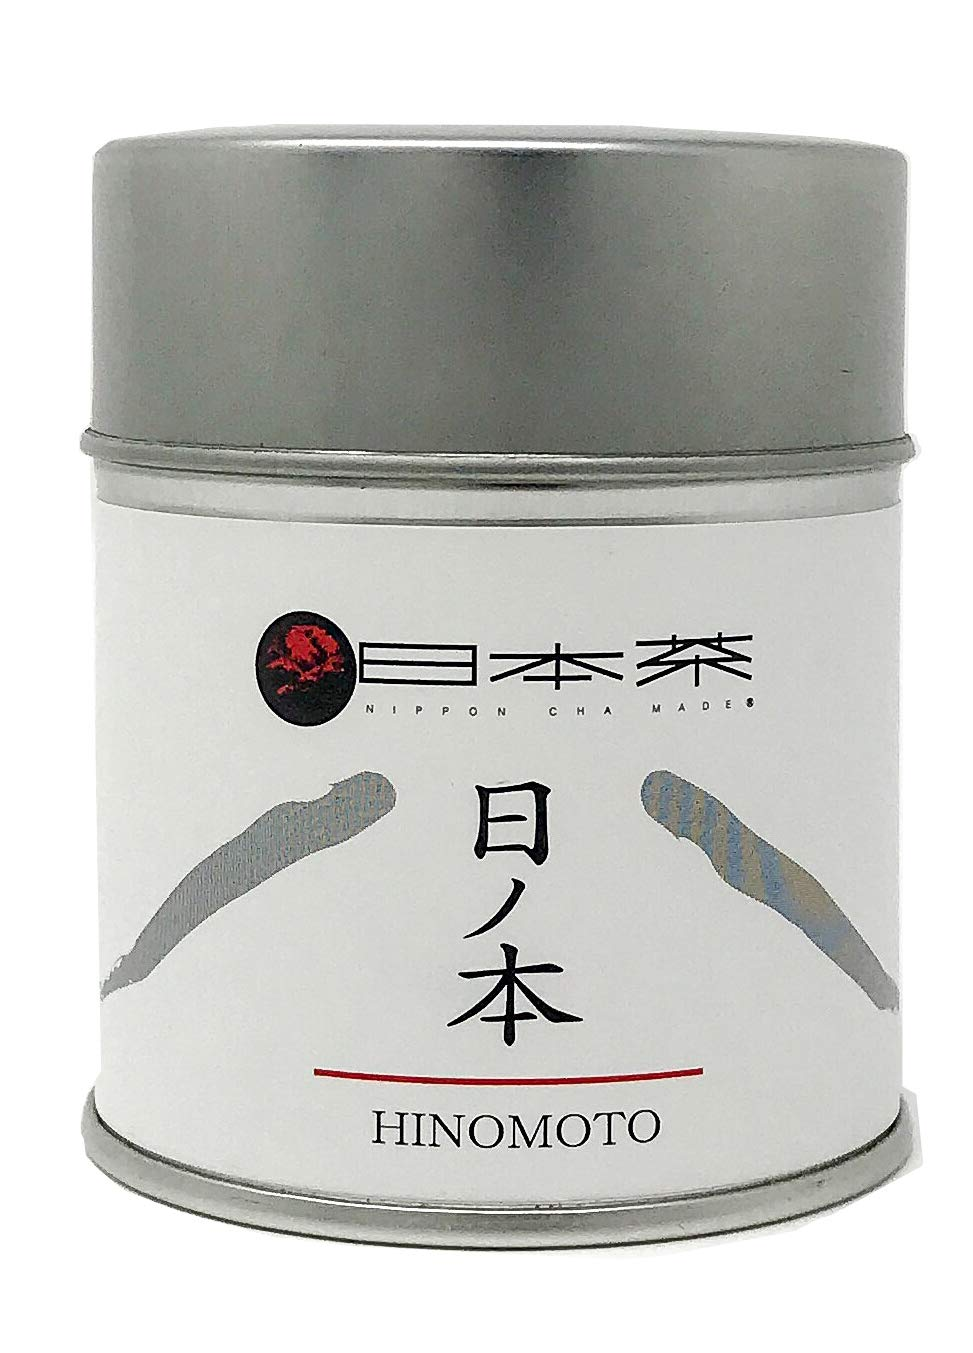 Nippon Cha Hinomoto Organic Matcha - JAS Certified - Japanese Origin - Ceremonial Grade Matcha For Everyday Recipes, 30g